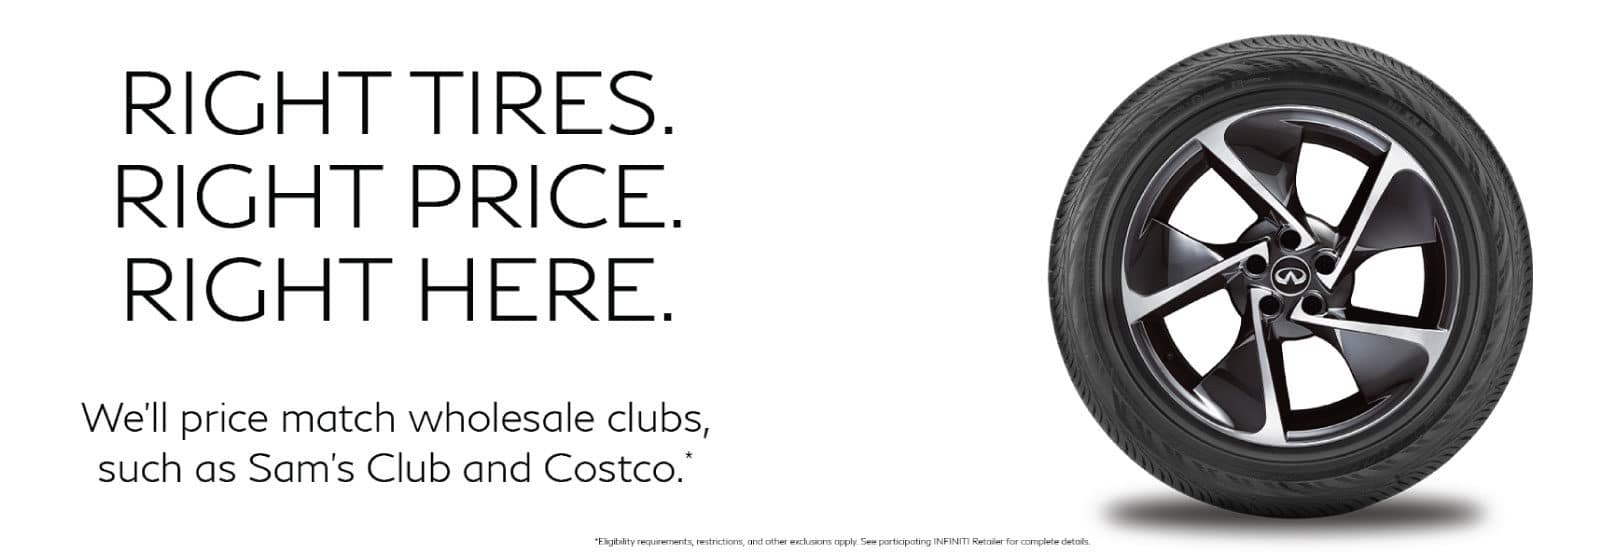 Right tires, right price, right here. Price match on wholesale clubs like Sam's Club and Costco.